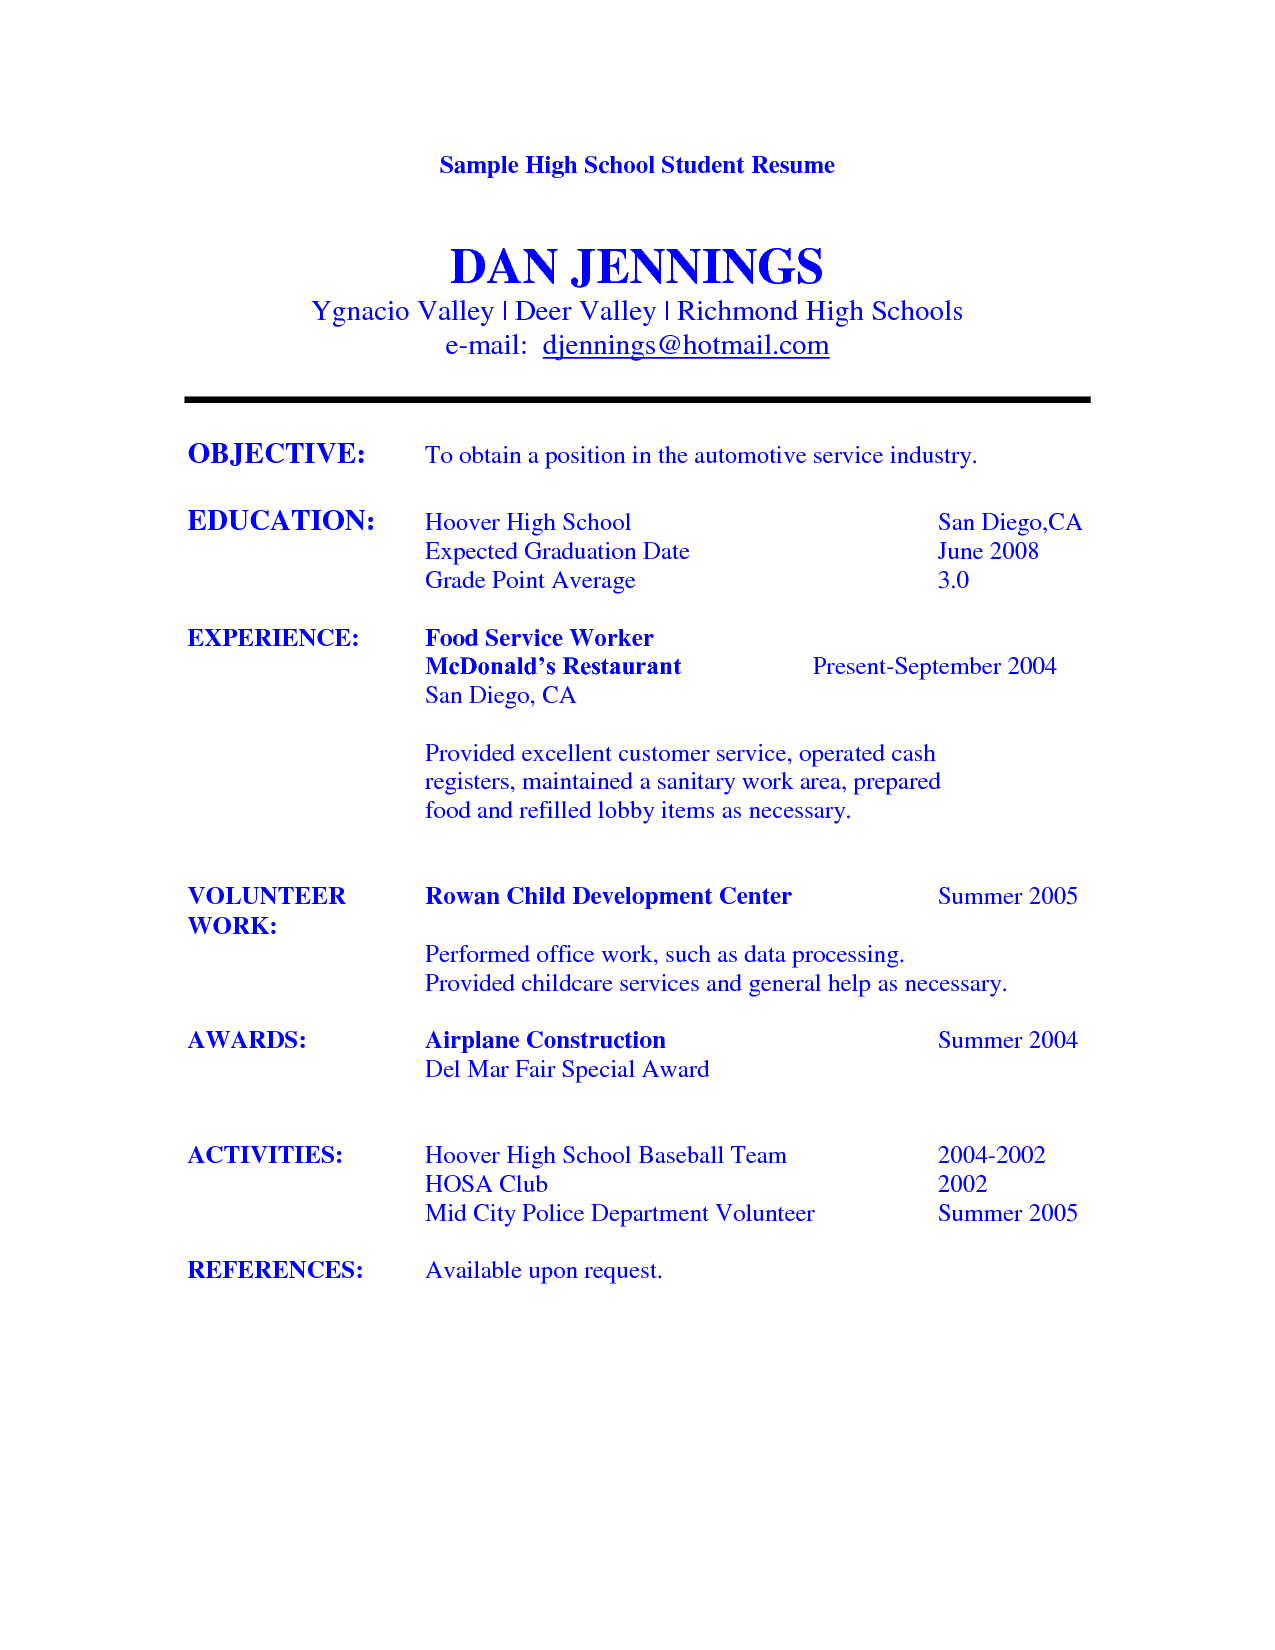 Photo Resume Resume Example For High School Student Sample Resumes